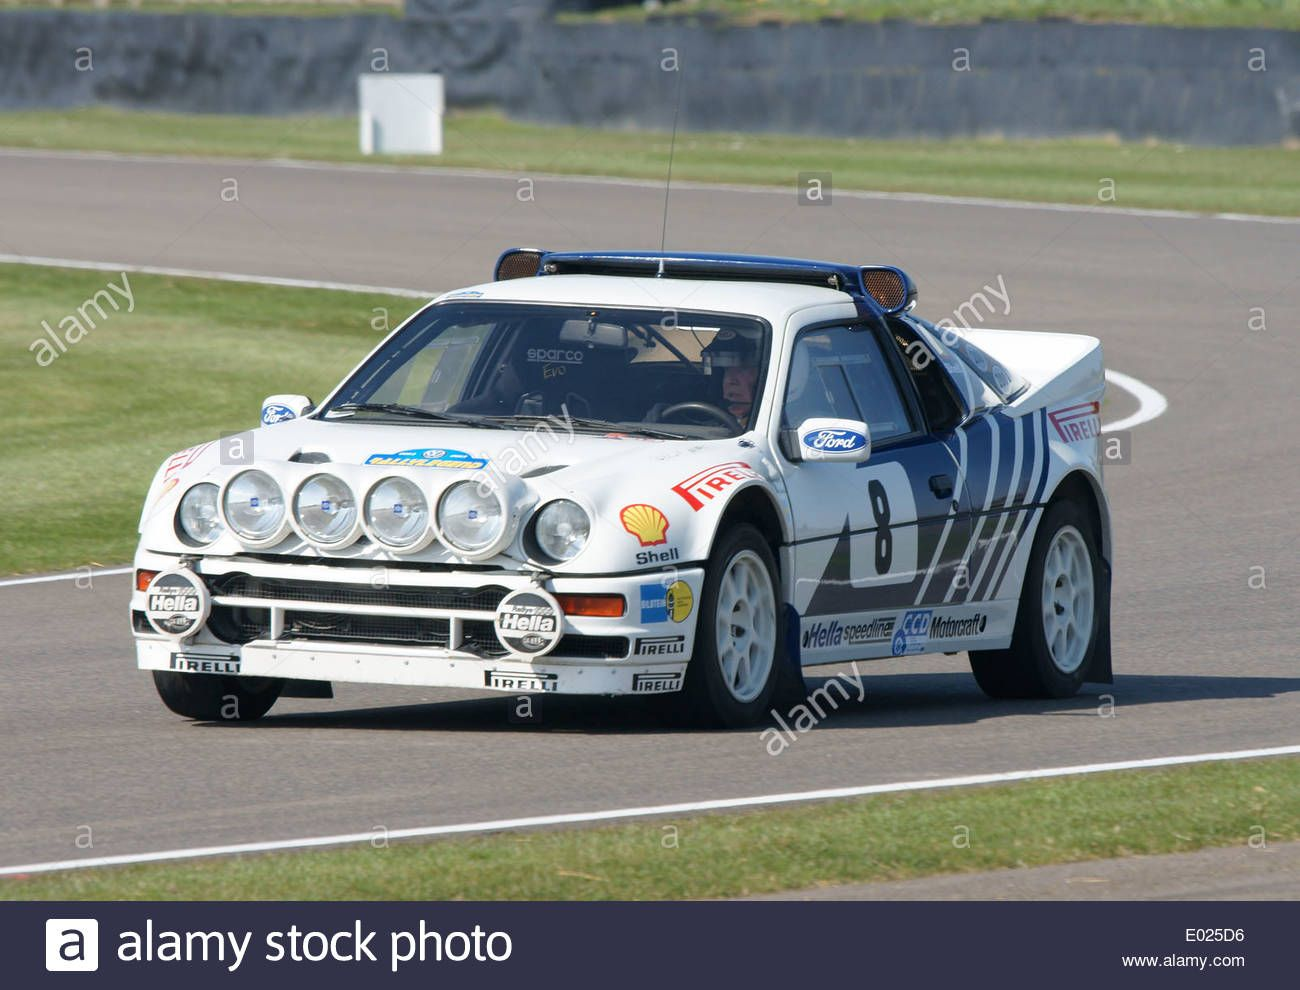 Download This Stock Image Ford Rs 200 E025d6 From Alamy 39 S